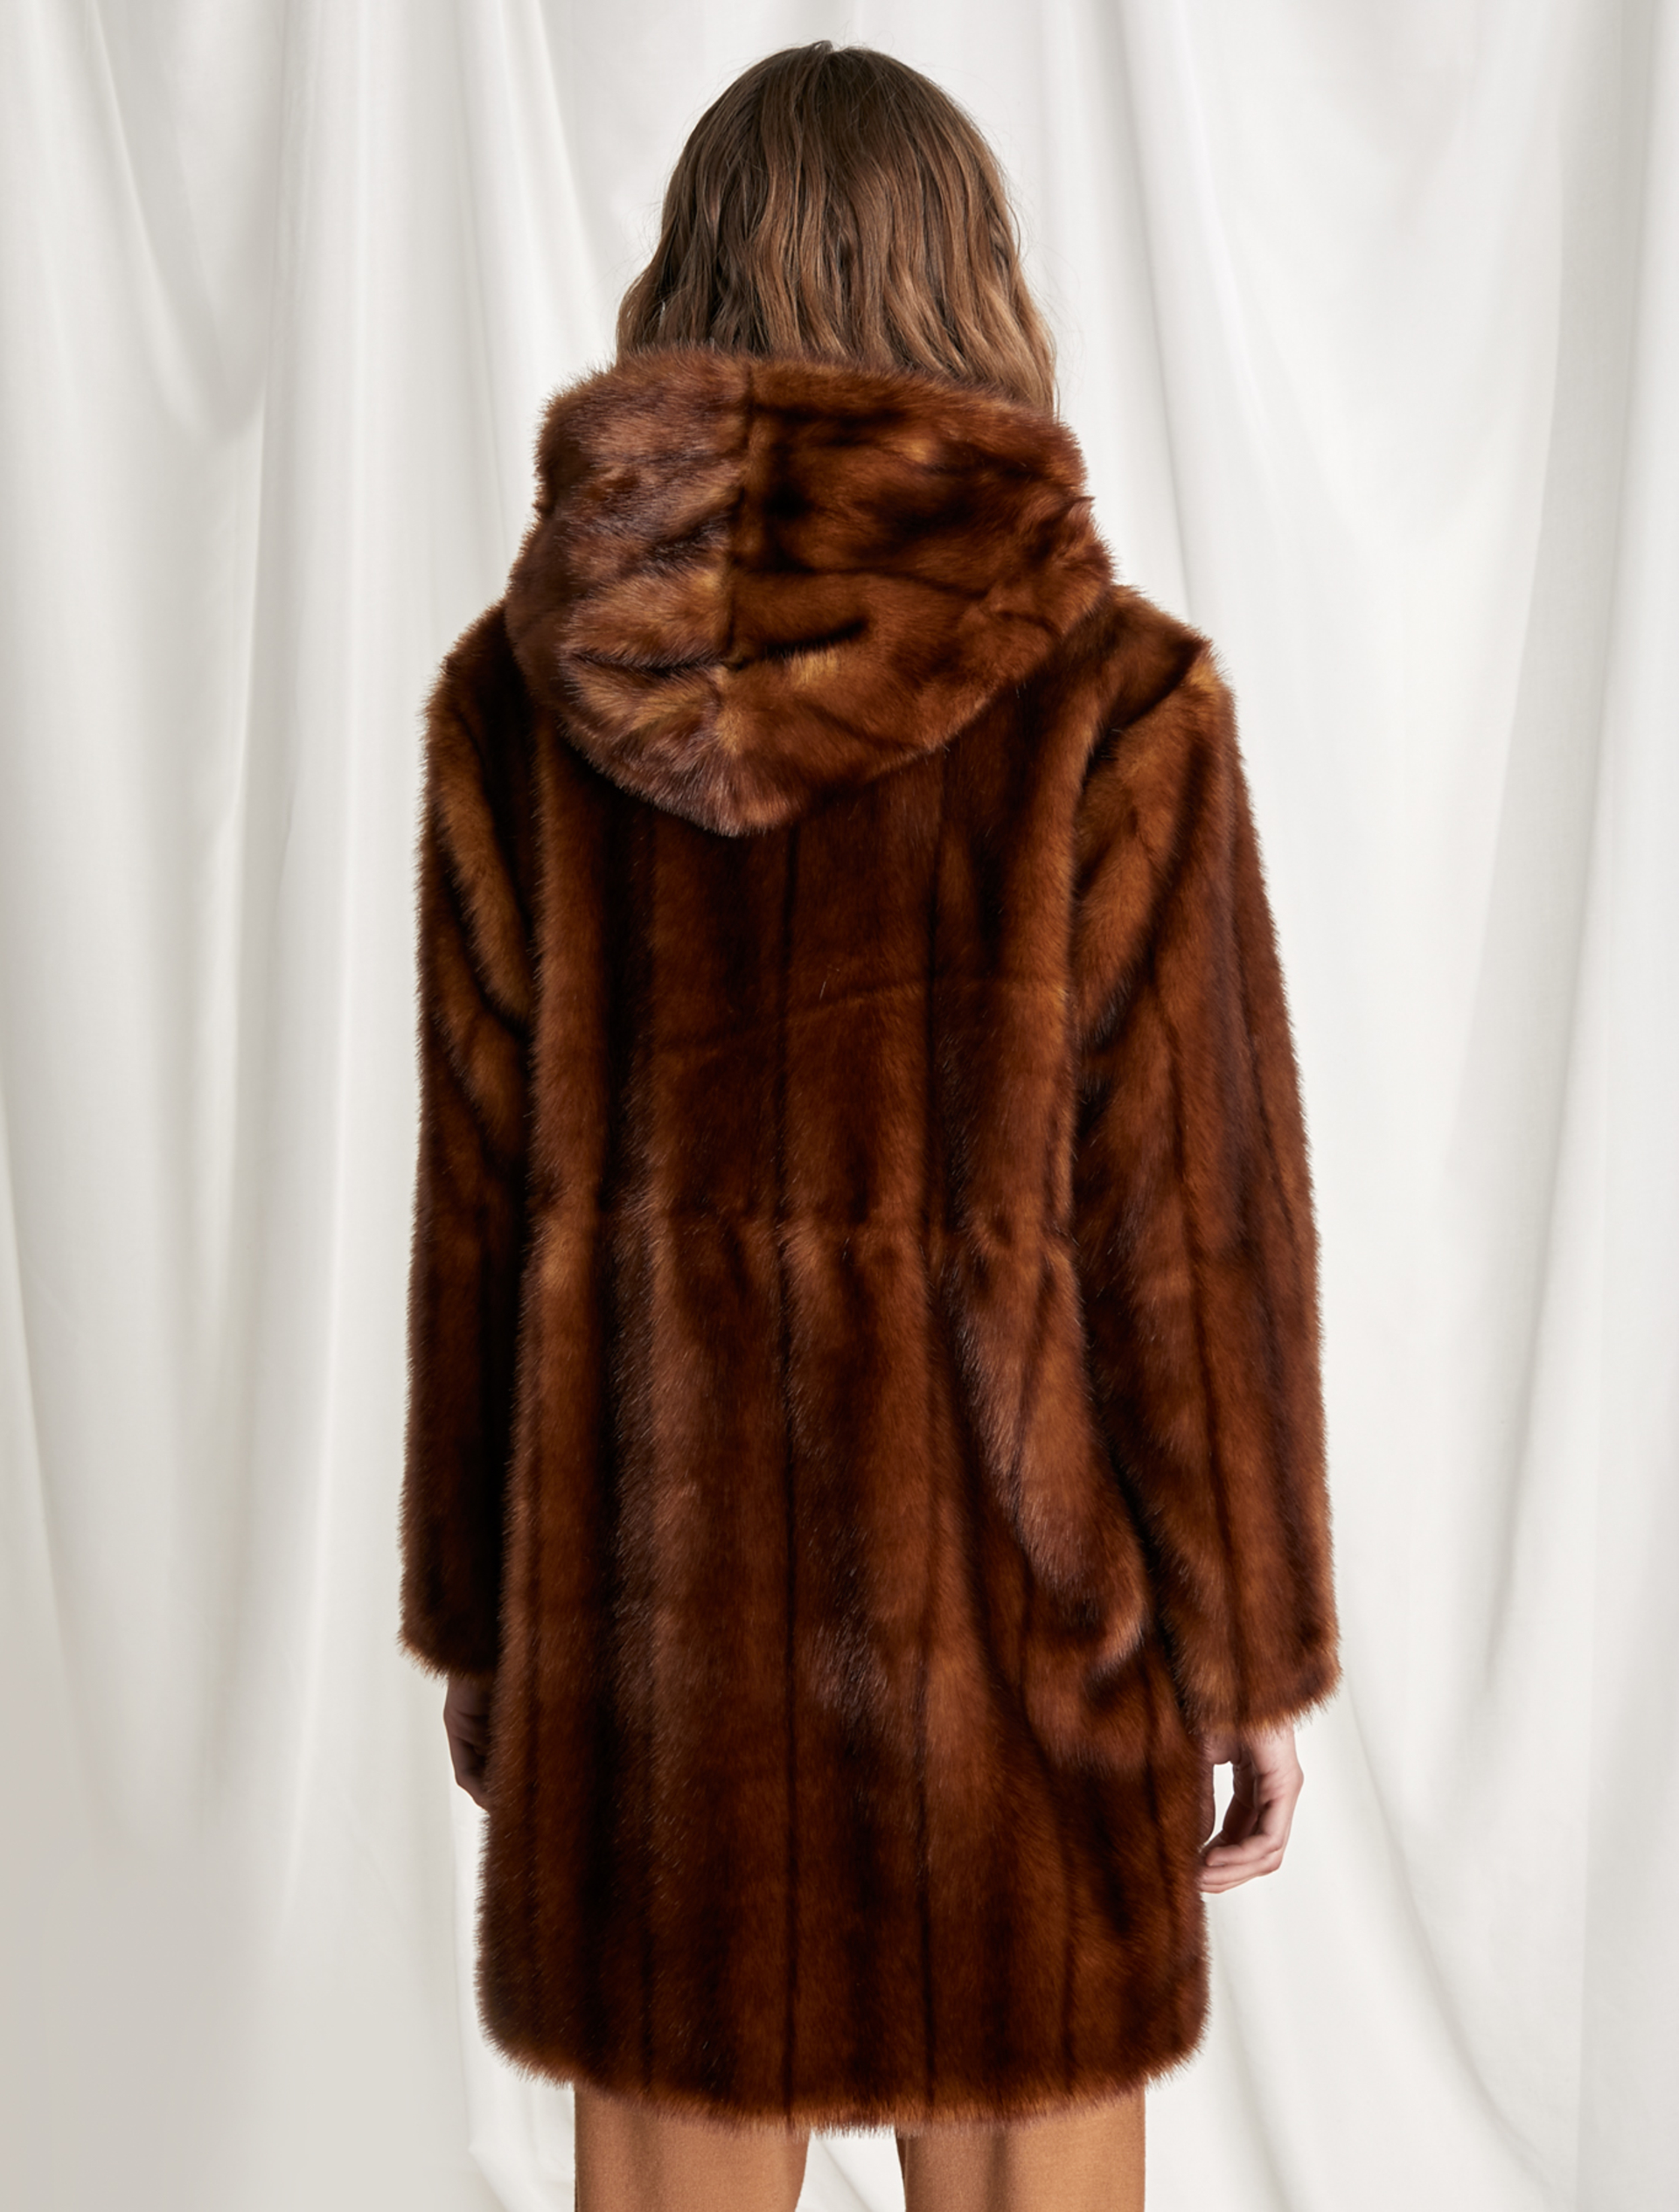 Hooded Parka Brown Marella, How Much Did A Mink Coat Cost In 1980